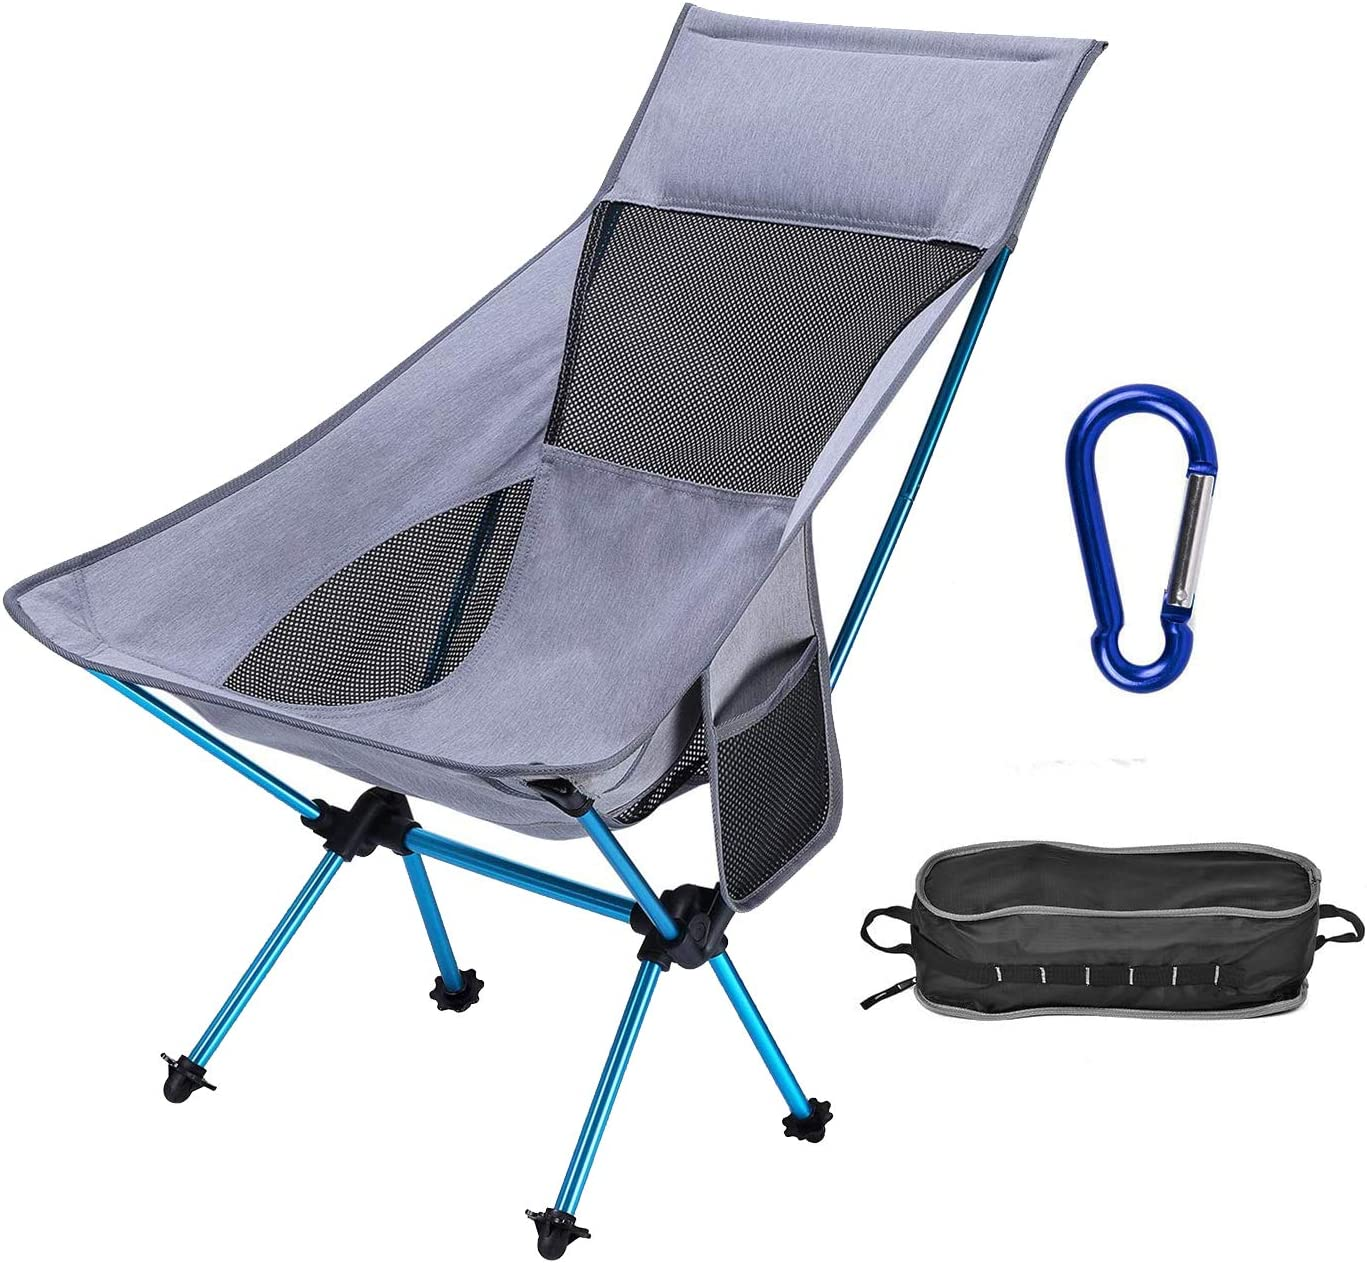 Portable Outdoor Backpack Camp Chair with Headrest for Picnic Beach Hiking Fishing ACTIONCLUB Folding HighBack Camping Chair 310 Lbs Capacity